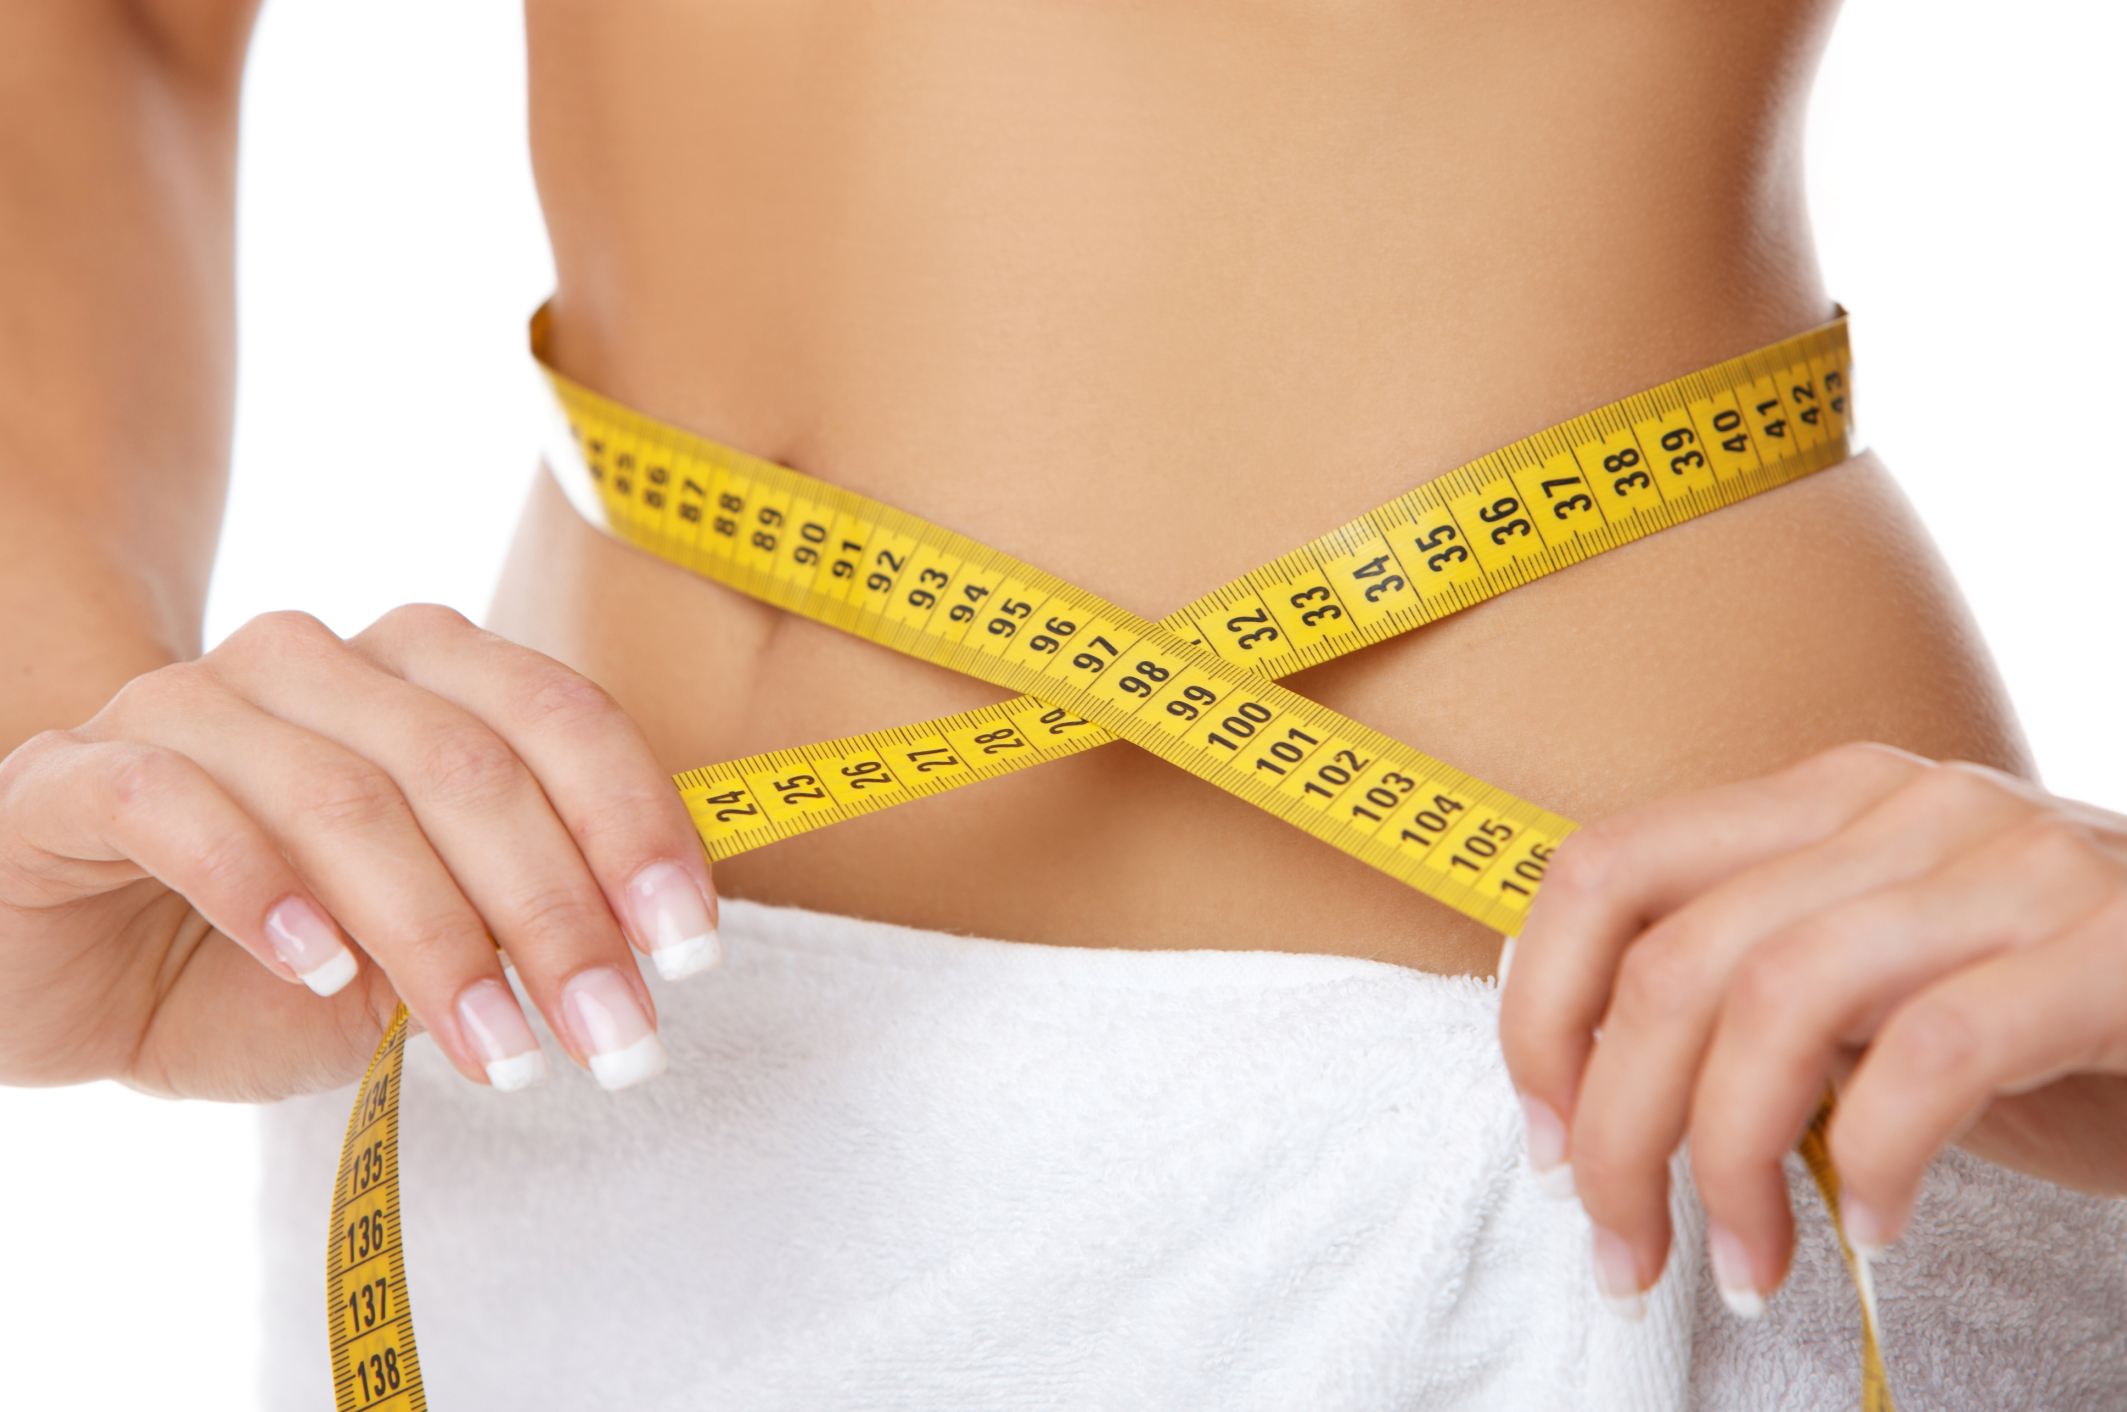 Phoenix Medical Spa Weight Loss Programs